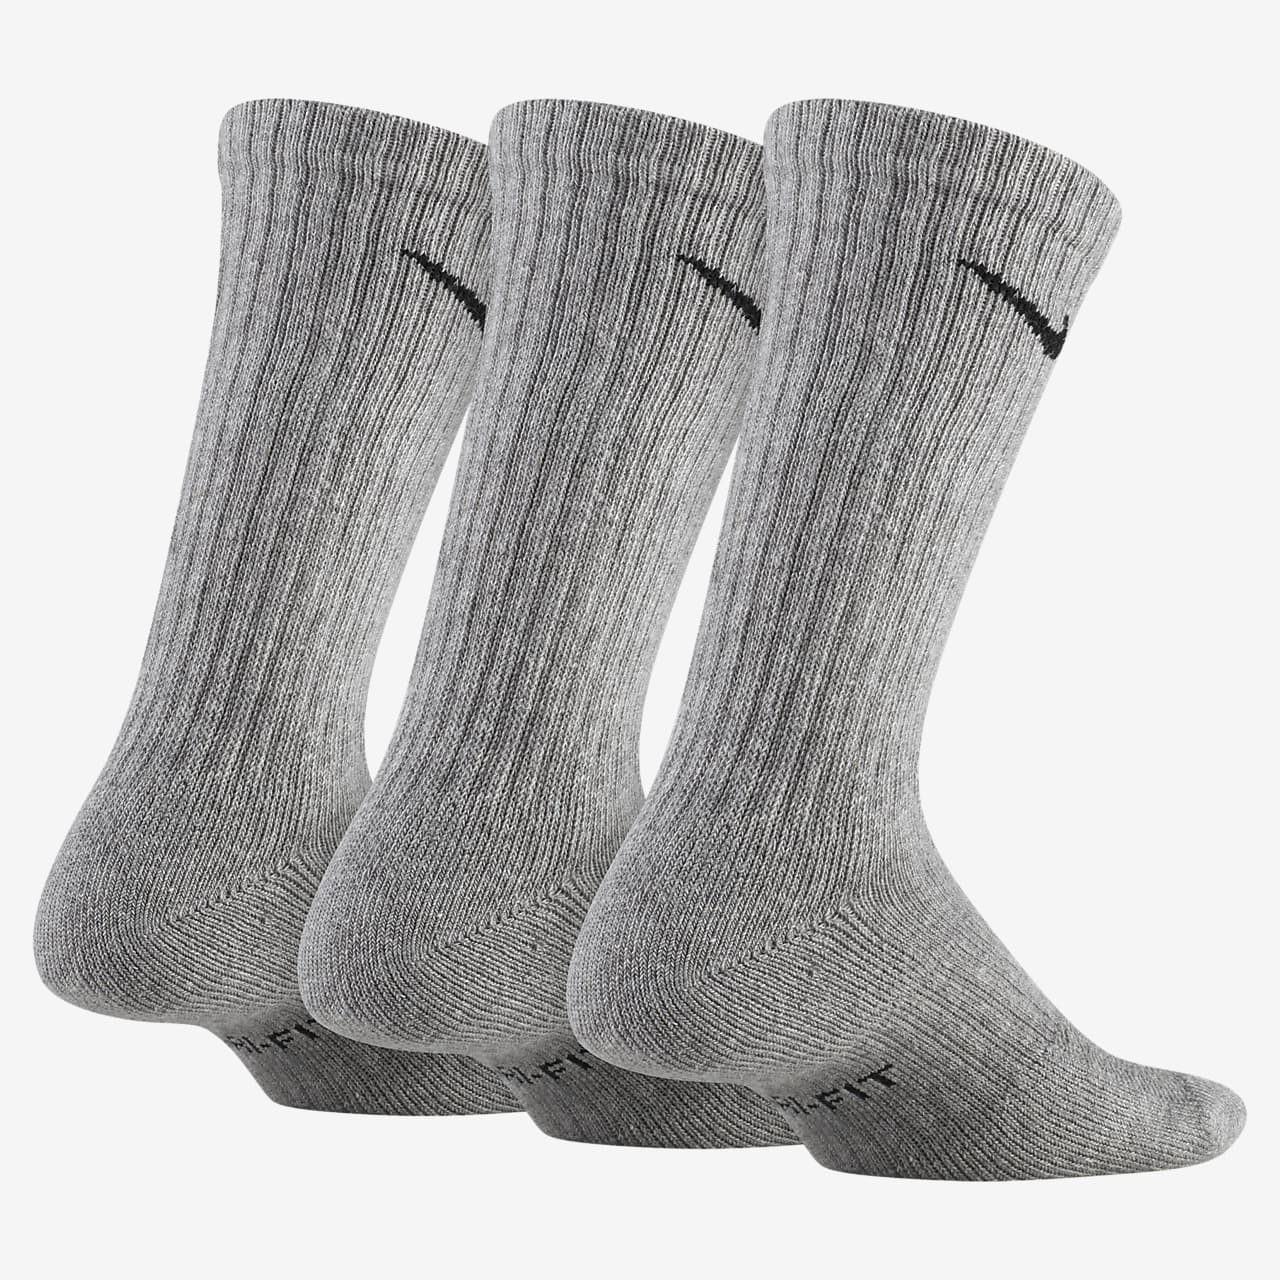 Nike Everyday Kids' Cushioned Crew Socks (3 Pairs)